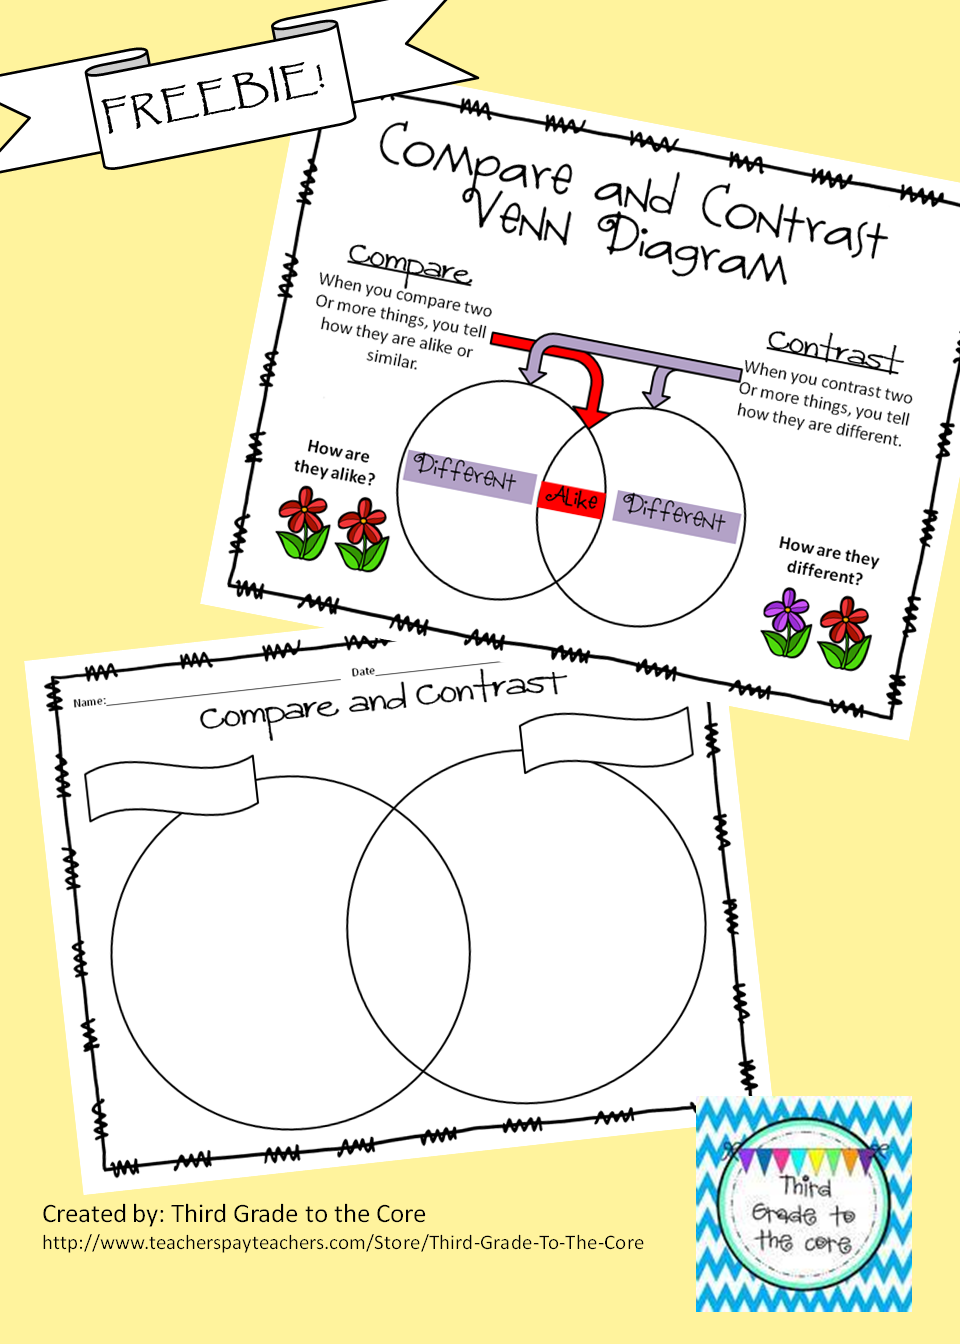 medium resolution of Freebie! Compare and Contrast Venn Diagram with Classroom Poster!   Compare  and contrast